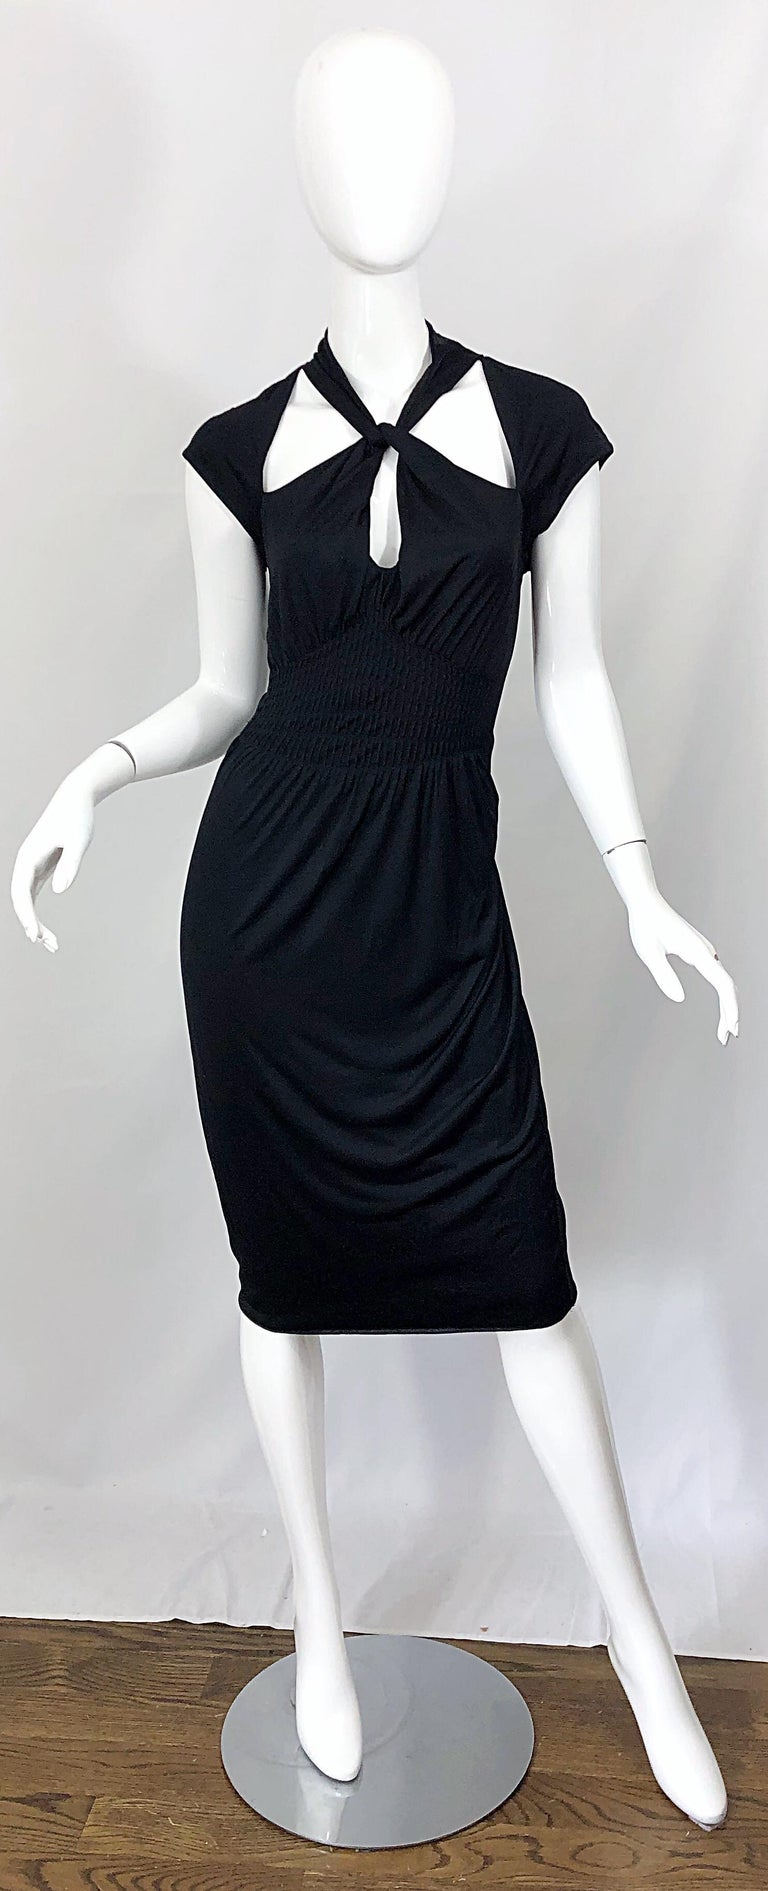 Gucci Tom Ford Fall 2003 Runway Black Cut Out Backless Stretch Jersey Dress  For Sale 12